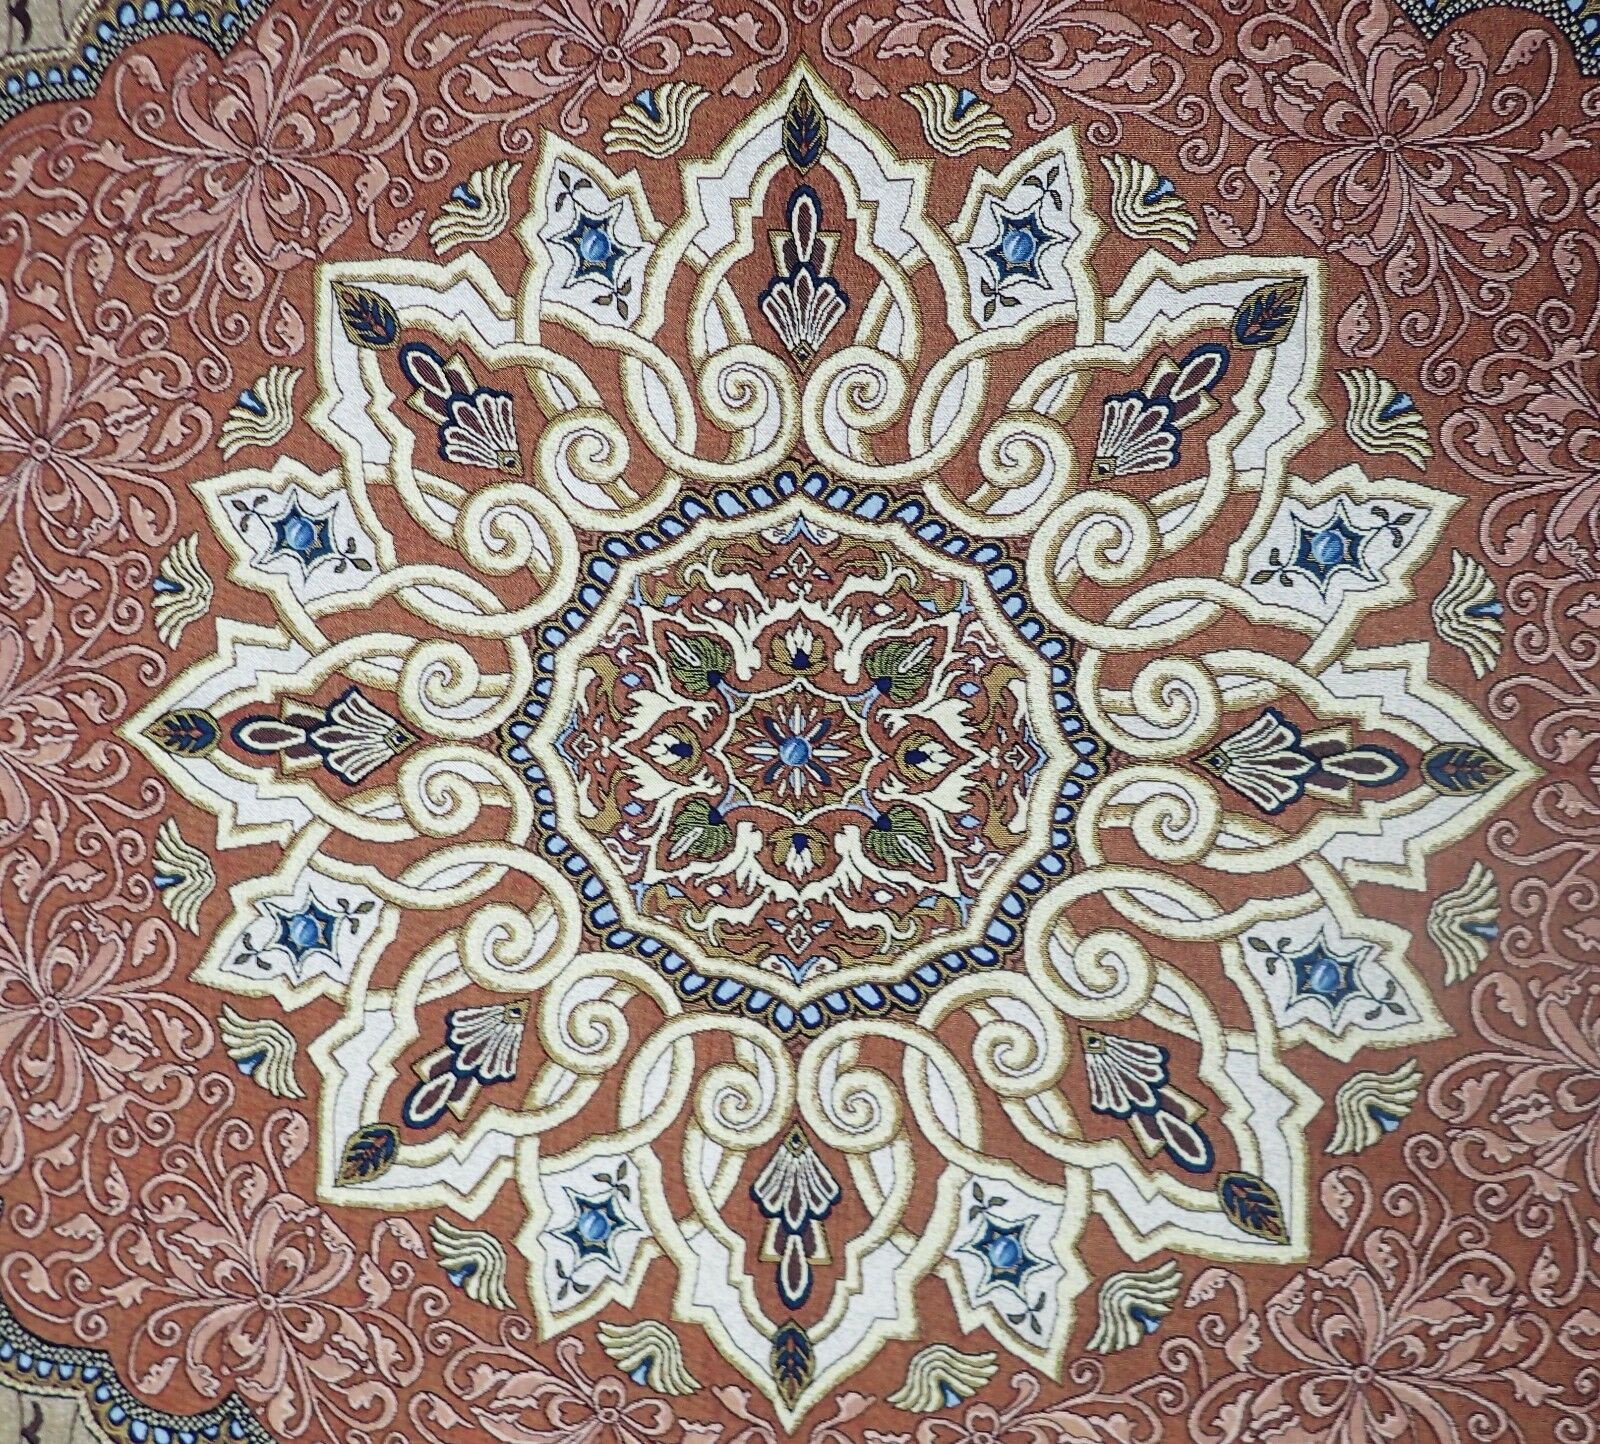 63.5x50 Wall Hanging Woven Art Tapestry Tapestry Tapestry Floral Baroque Modern 8205d4